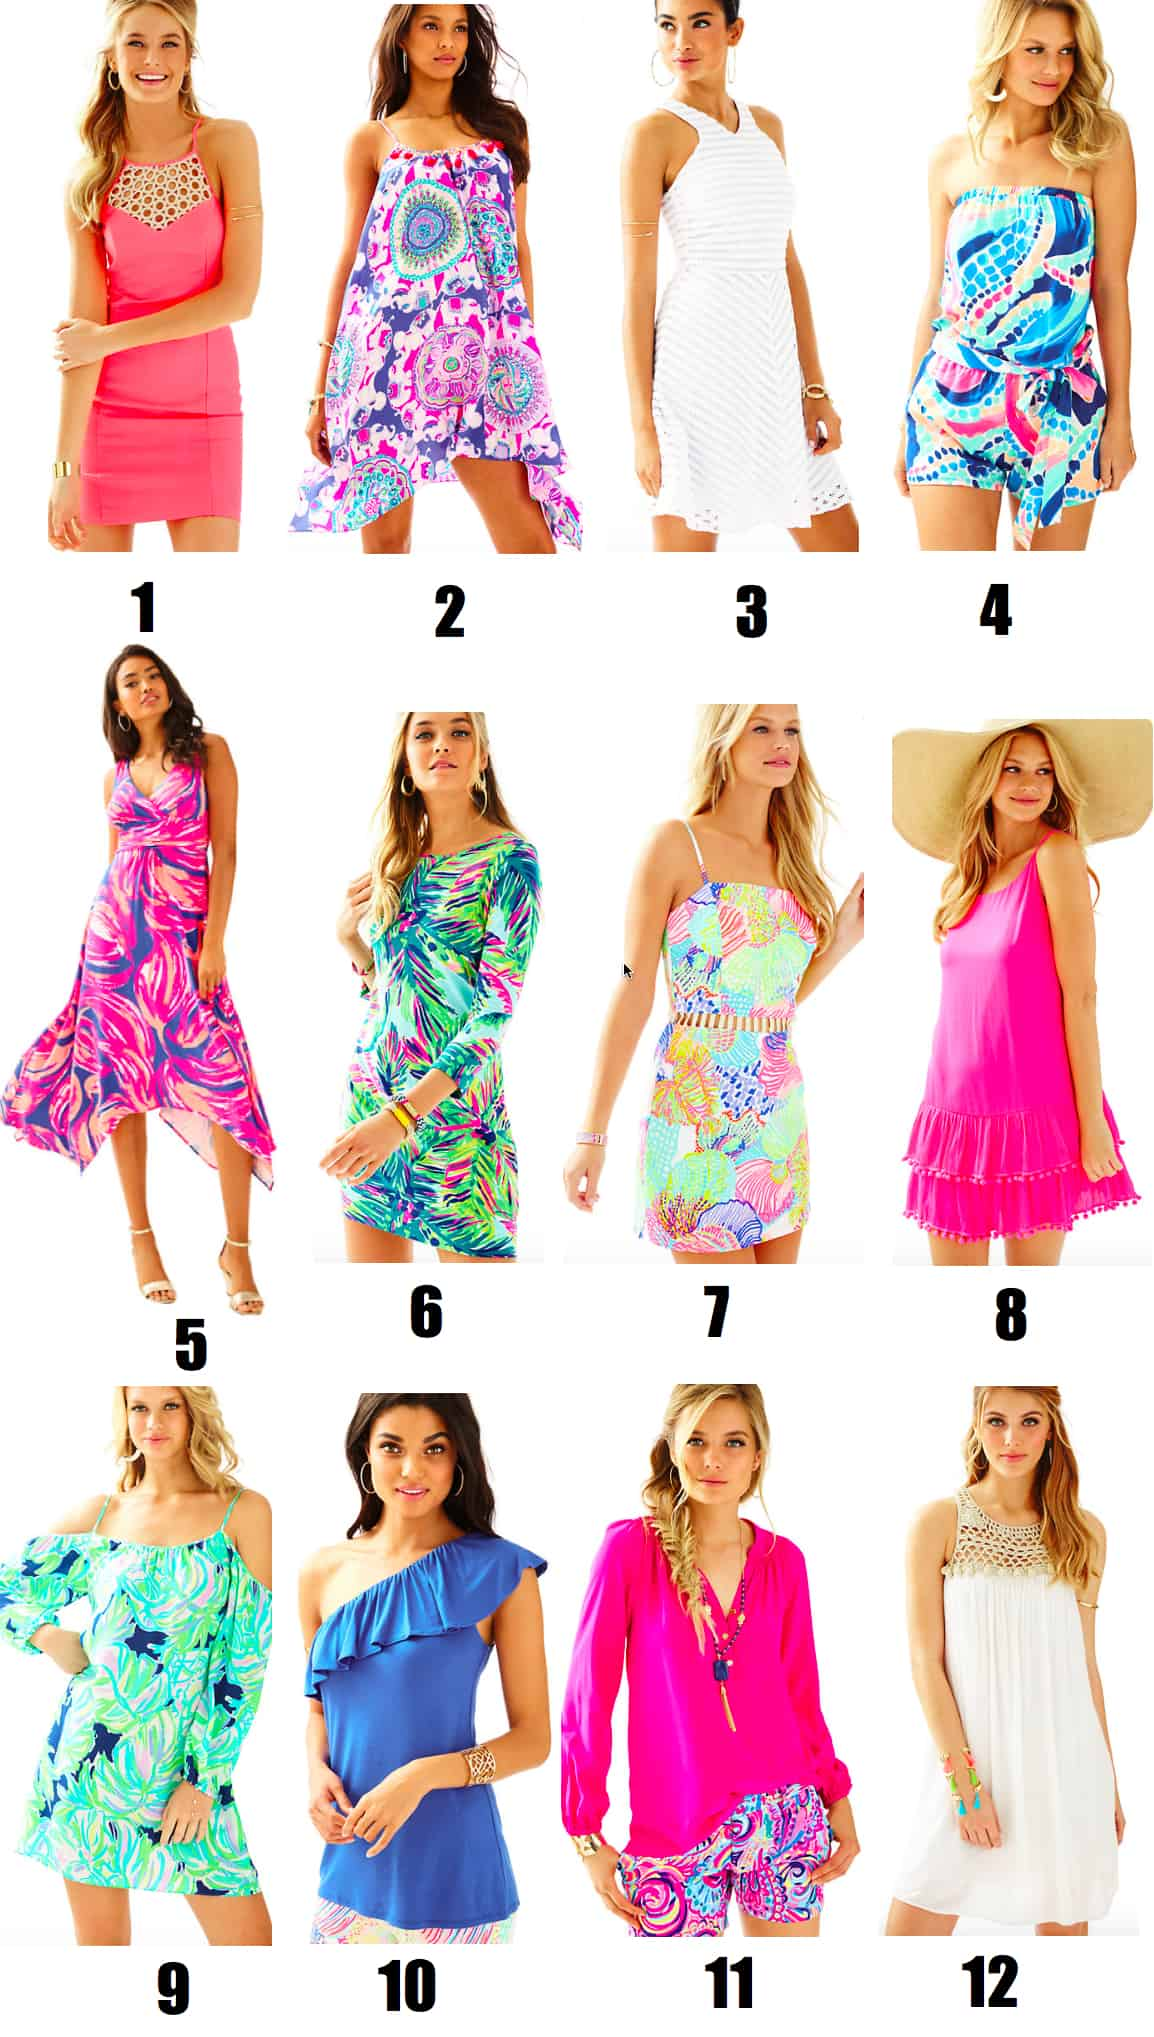 387fabe4db Shop Now: The Lilly Pulitzer After Party Sale | Katie's Bliss